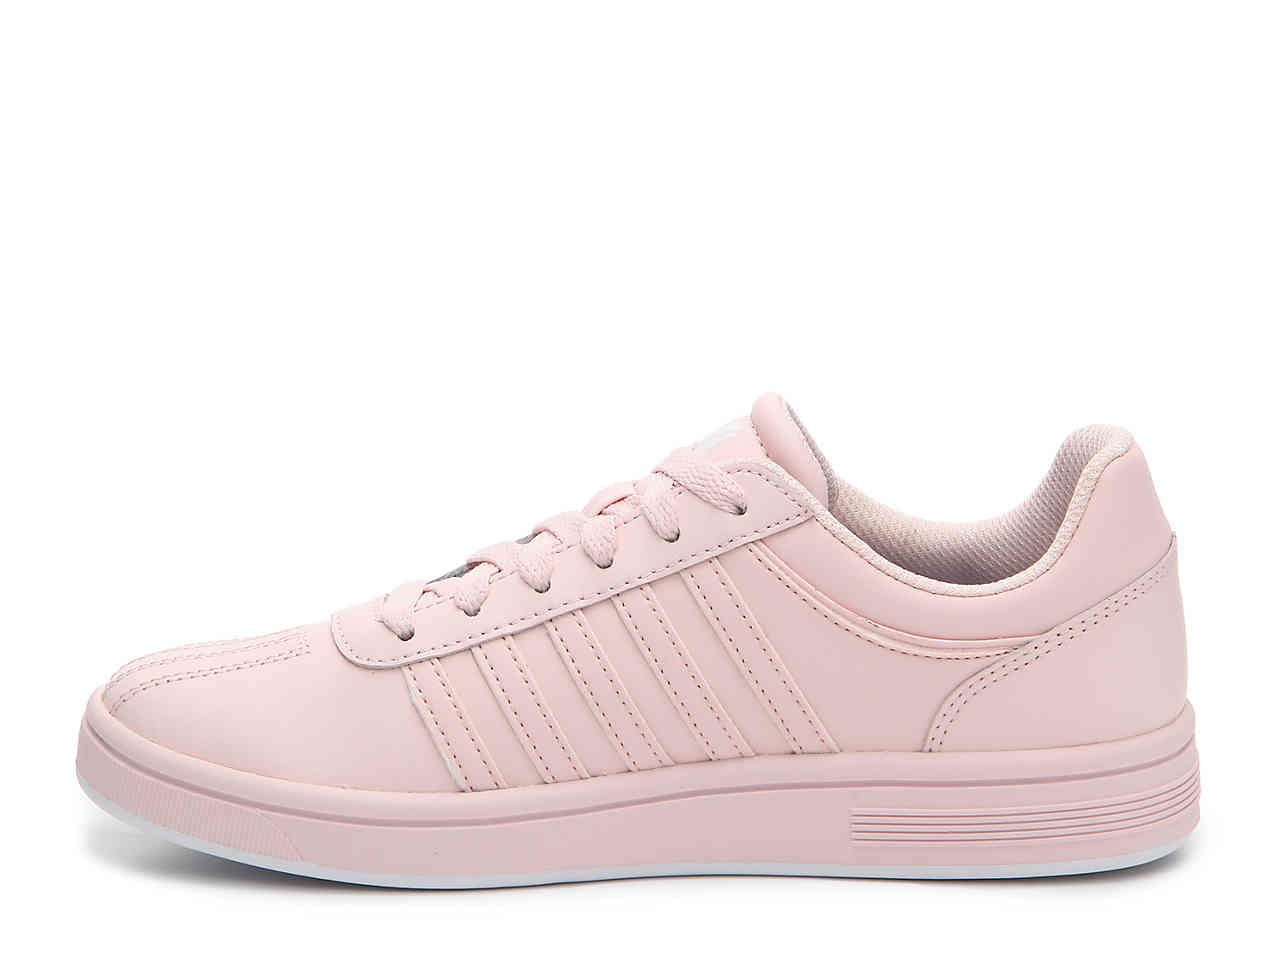 pink k swiss shoes 2016 jordans that just came out yesterday bea